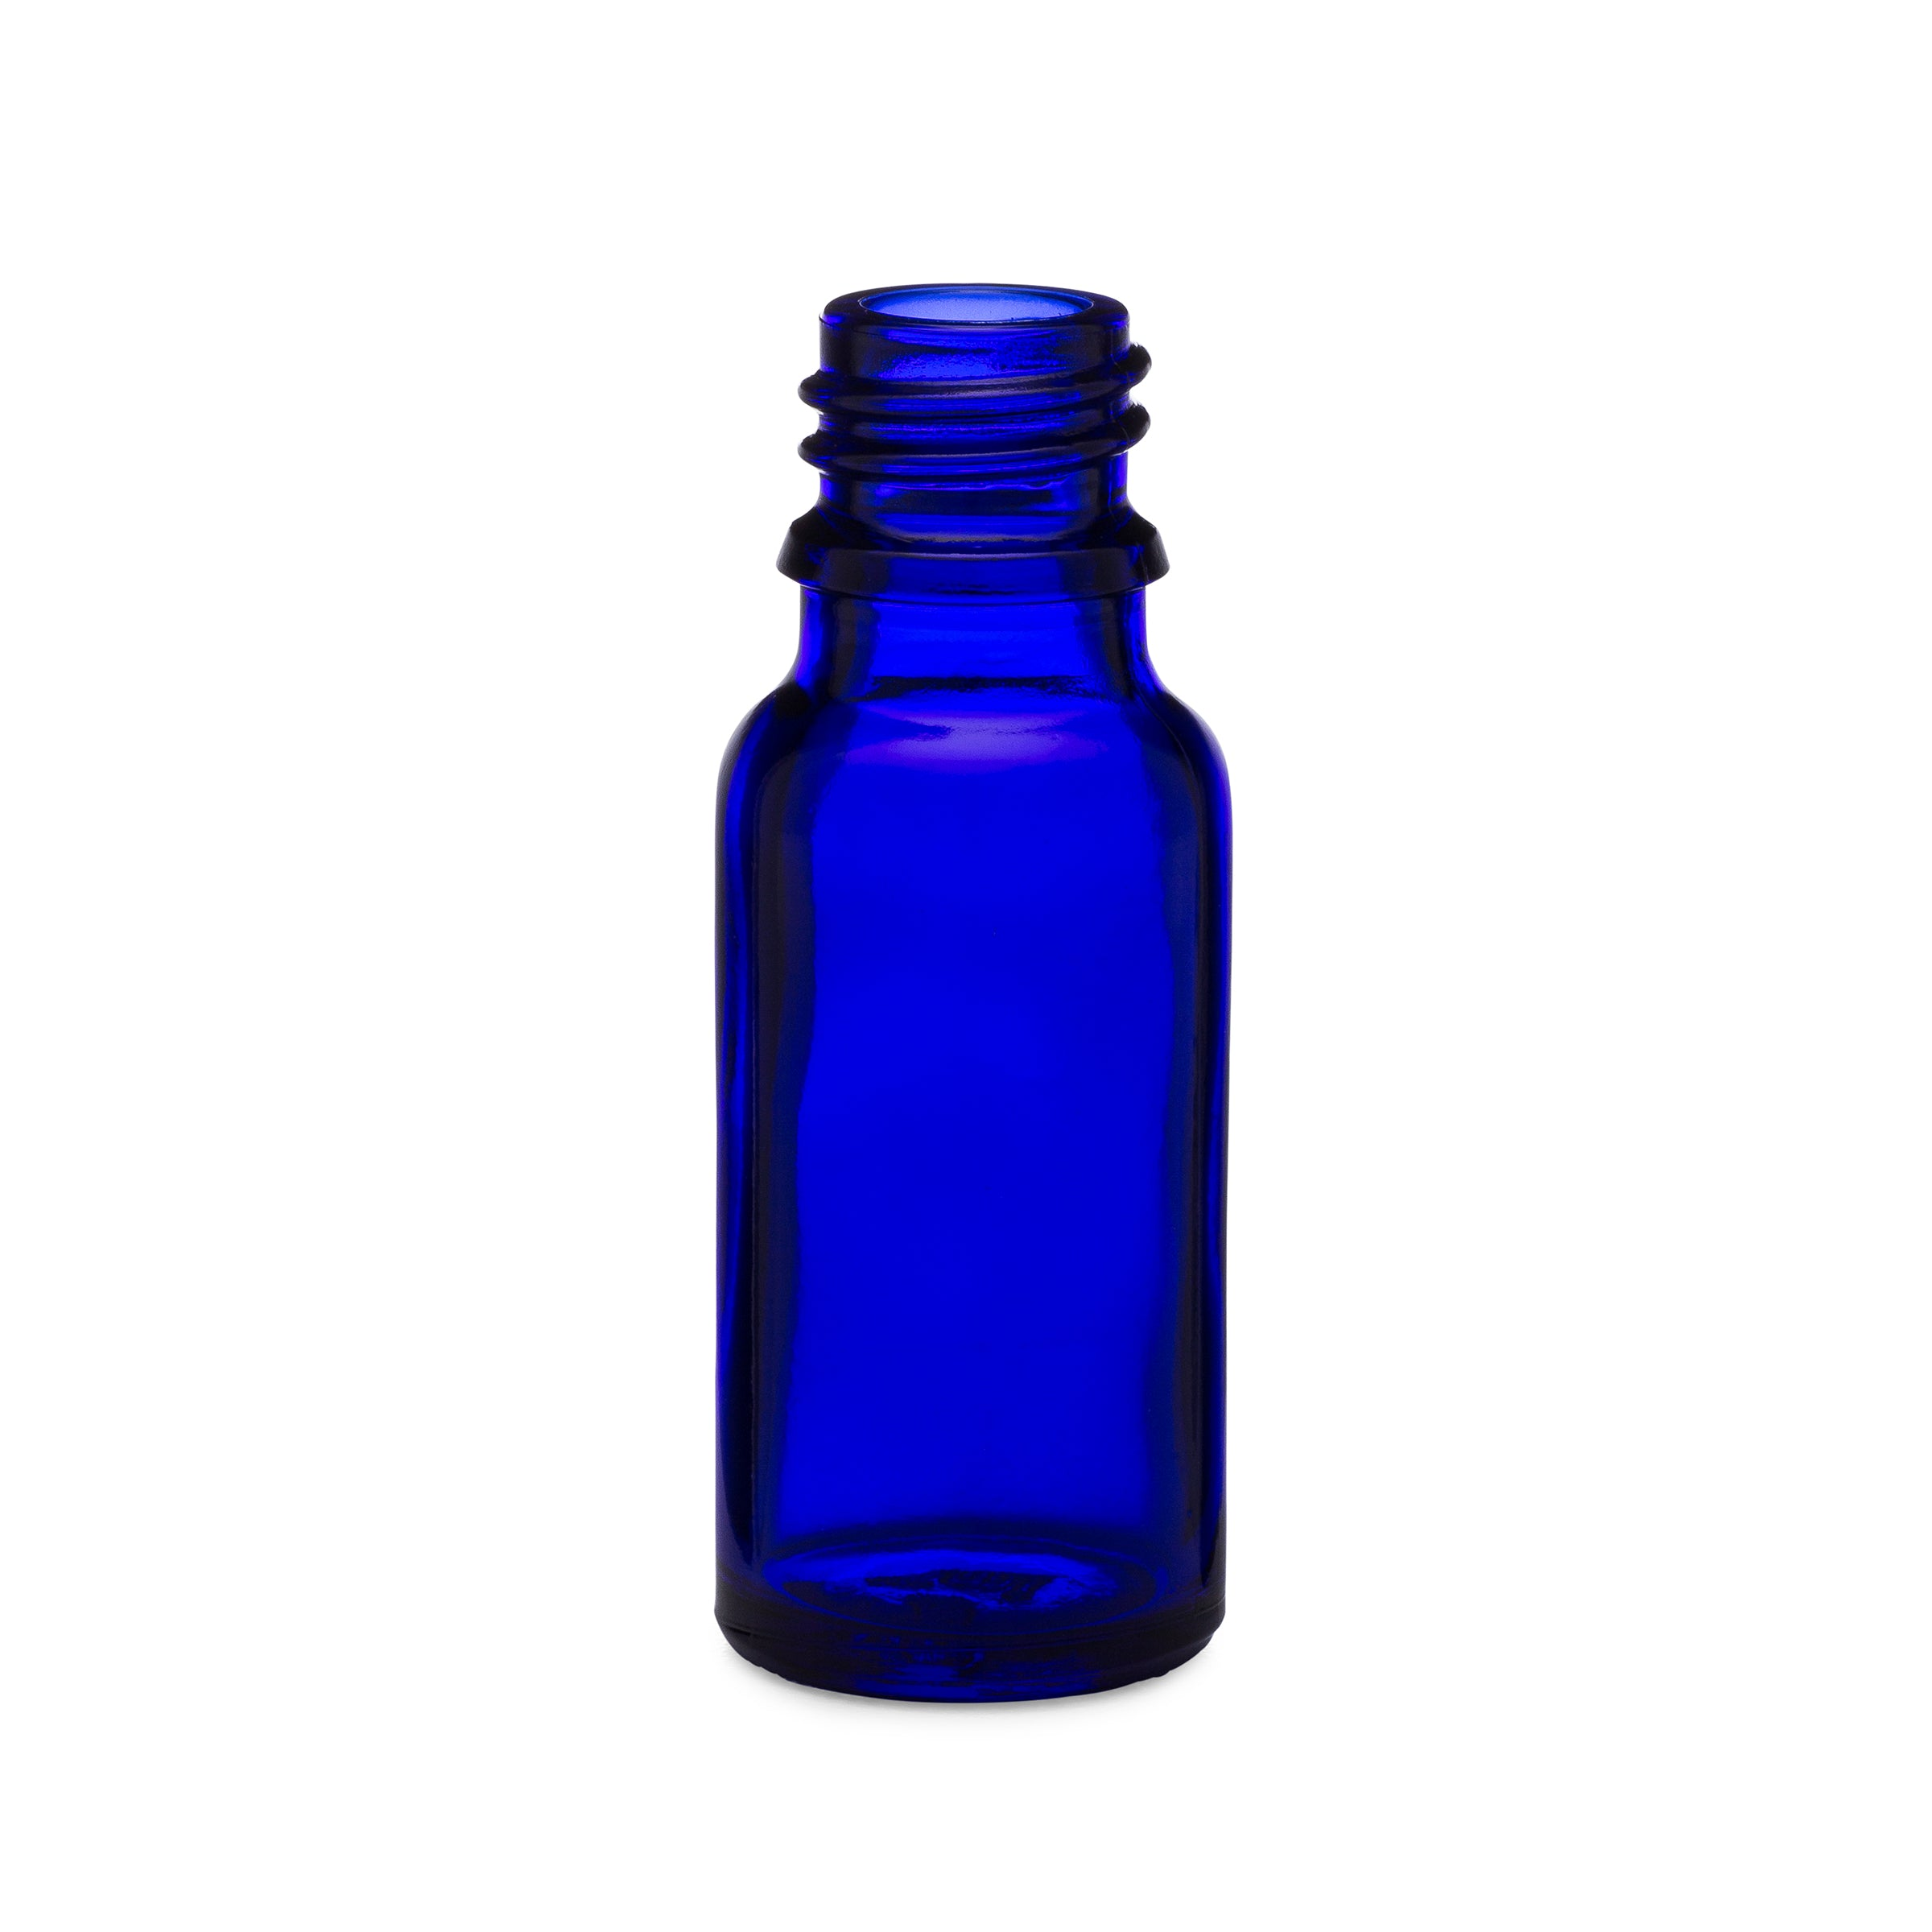 15ml/0.5oz Blue Dropper Bottle